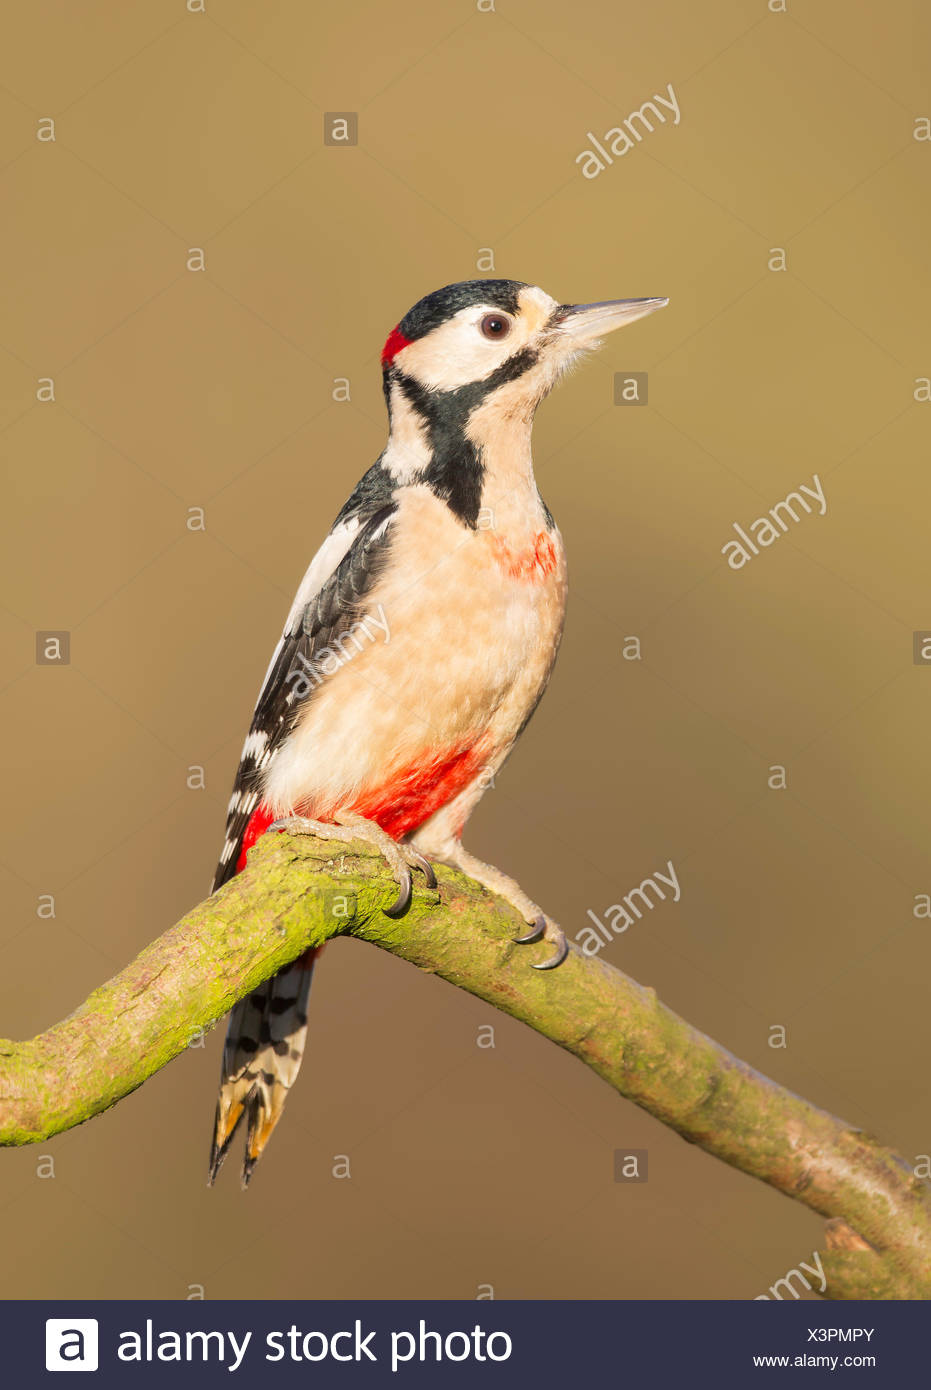 UK, Wild Great Spotted Woodpecker on branch - Stock Image